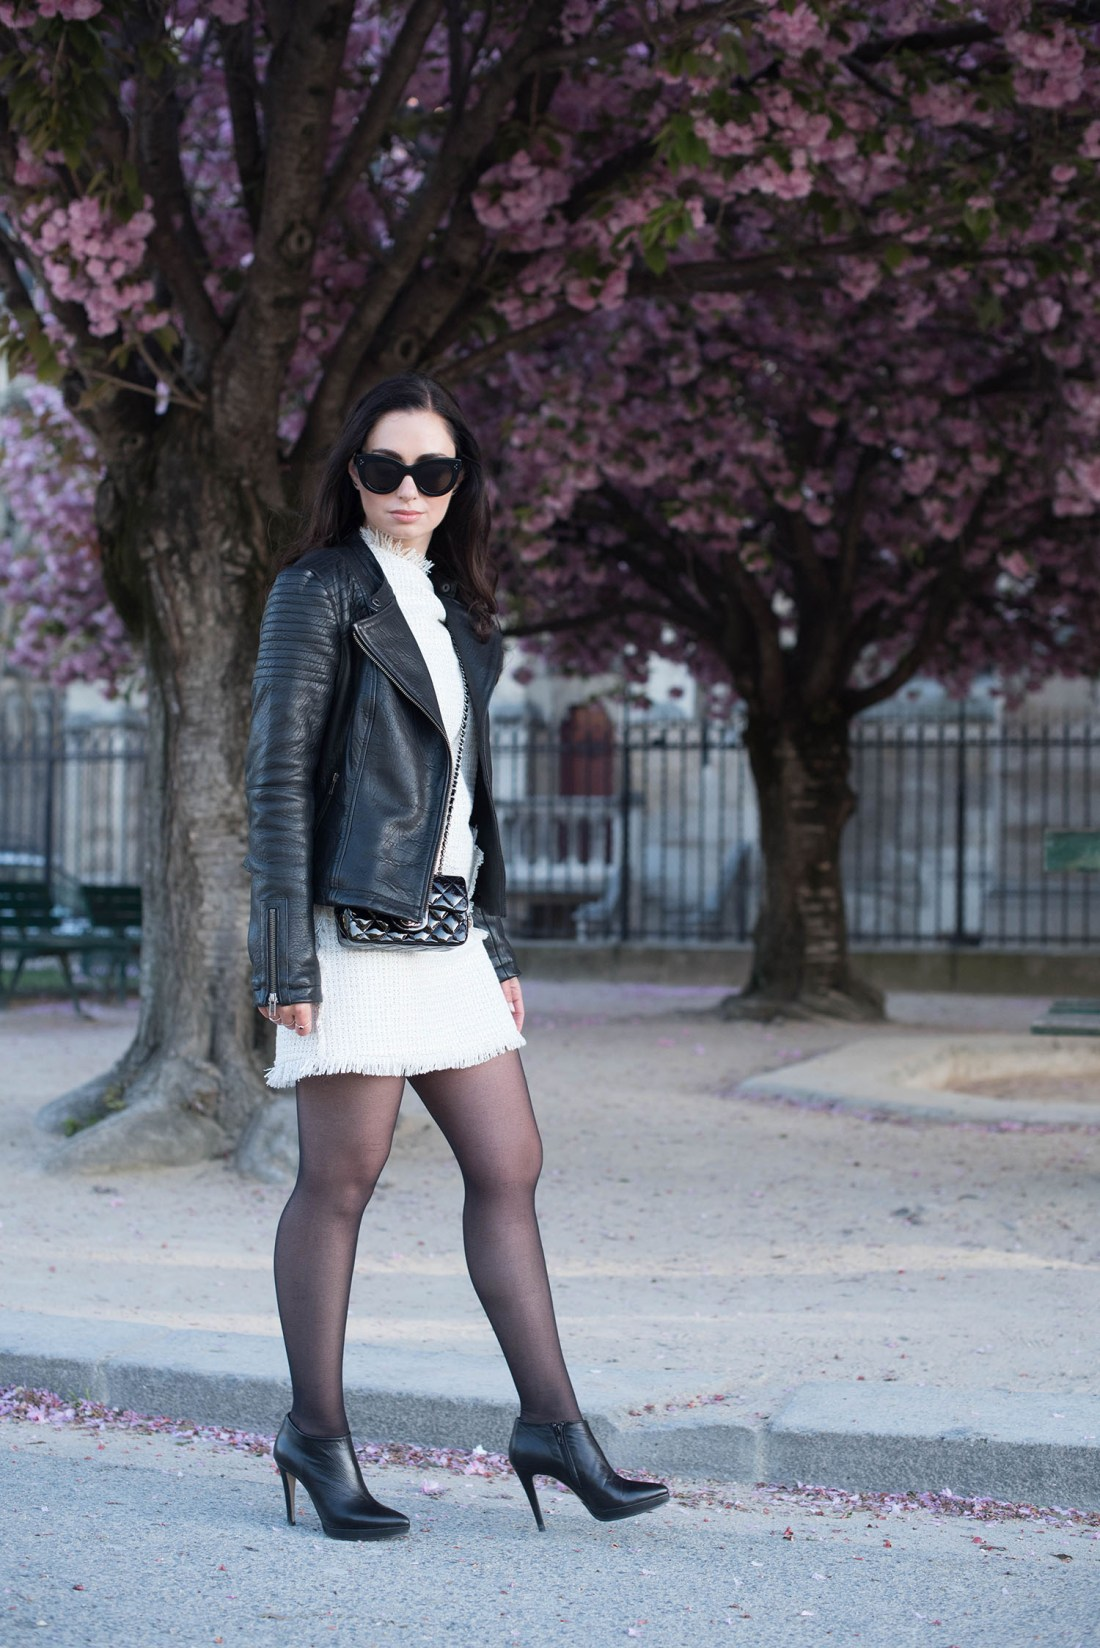 Fashion blogger Cee Fardoe of Coco & Vera walks on Ile de la Cite wearing a Floriane Fosso dress and Le Chateau boots